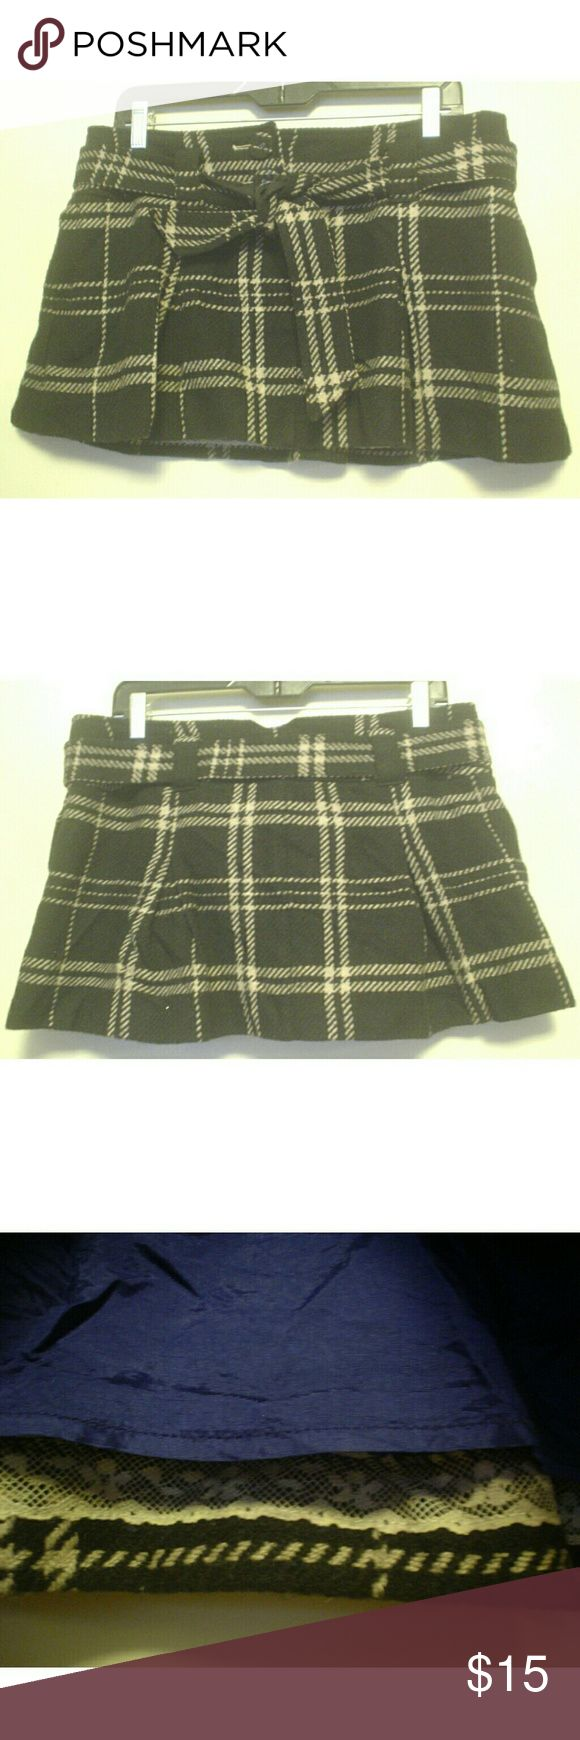 American Eagle Wool Plaid Schoolgirl Mini Skirt 10 American Eagle  Black and White Plaid Mini Skirt Schoolgirl Look Wide Self Tie Belt Purple Acetate Lining Two Button / Zip Front Close Side Seam Pockets Size 10  60% Wool / 40% Viscose Lining 100% Acetate   Measurements:  Waist: 18 Inches. Hips: 24 Inches. Length: 13 Inches.  I have inspected the skirt and found no rips, stains or flaws. American Eagle Outfitters Skirts Mini